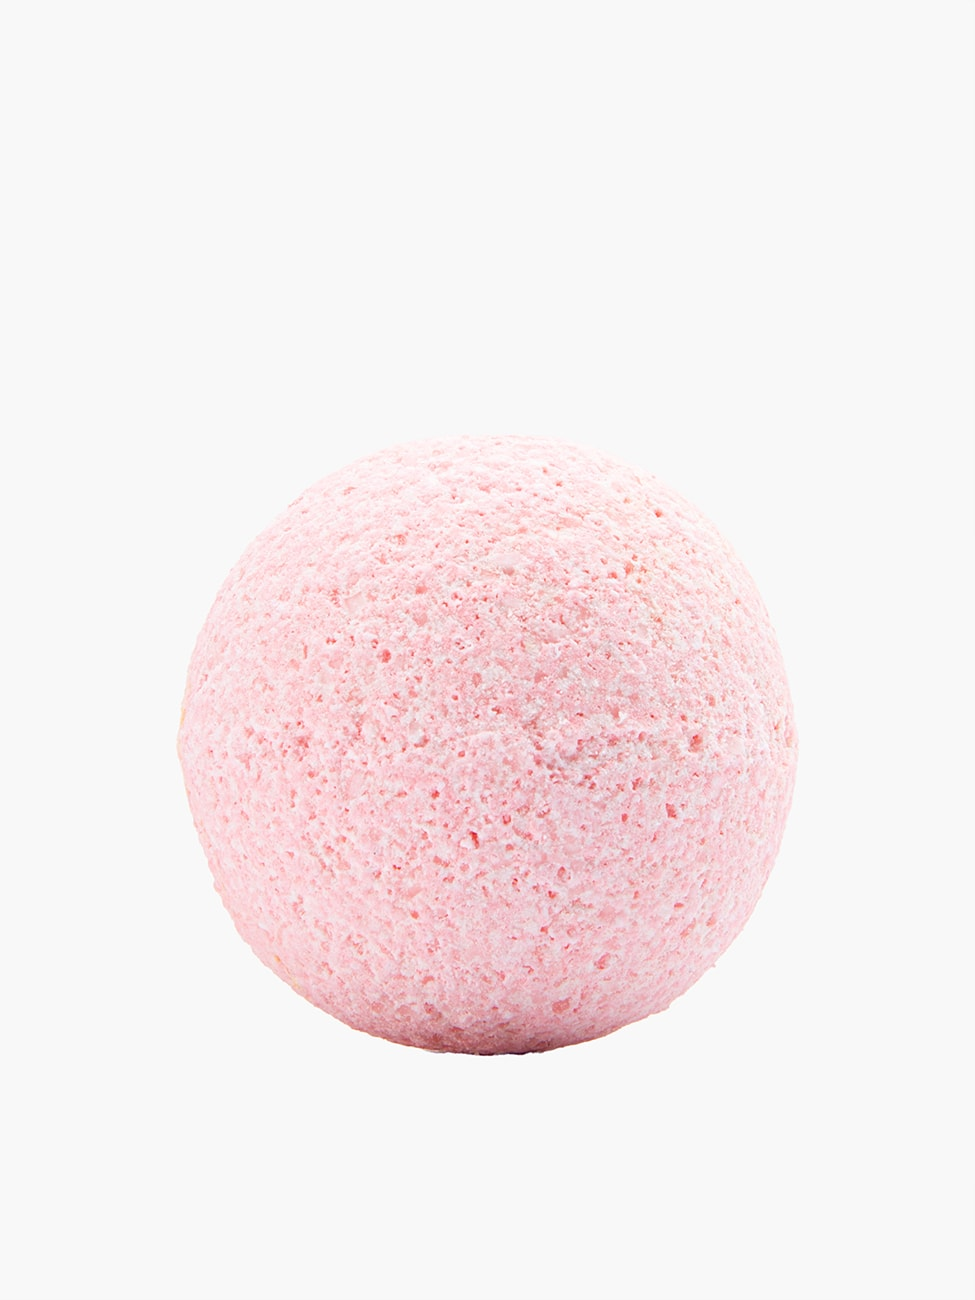 Empower_Bathbomb_Close_Ethereal_Dermocosmetics_Skincare_Handmade_Greek_Products